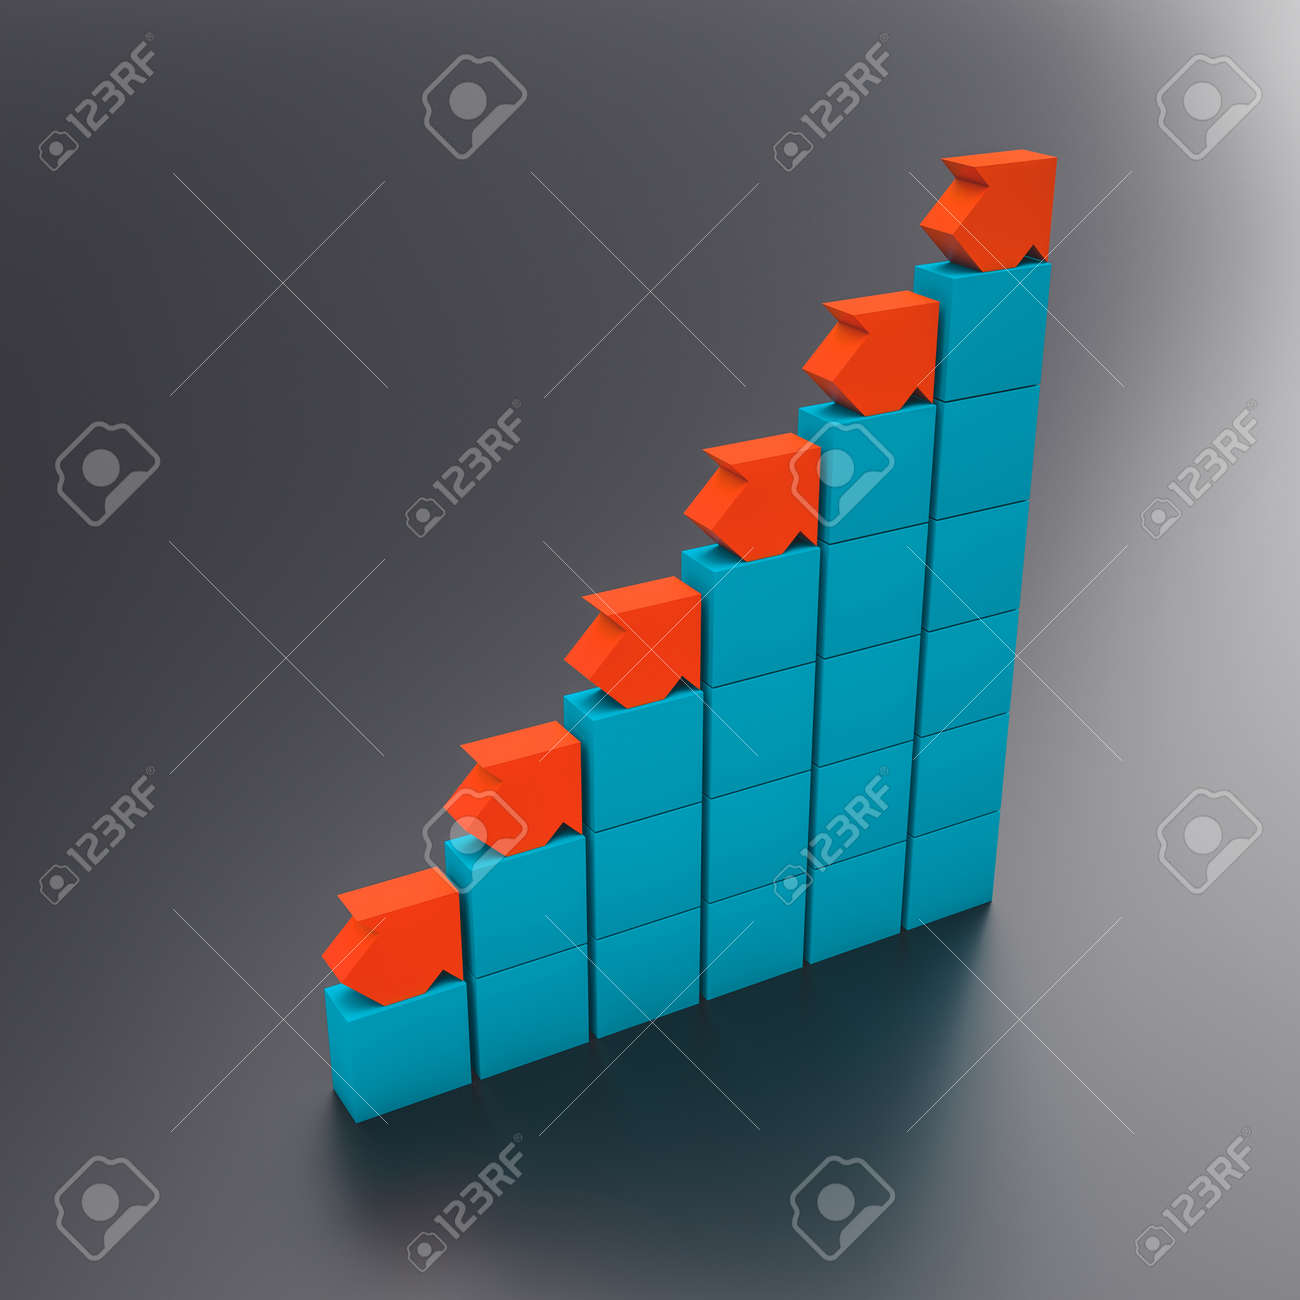 blue and red arrows on schematic block chart. business and finance concept. 3d render - 173236179